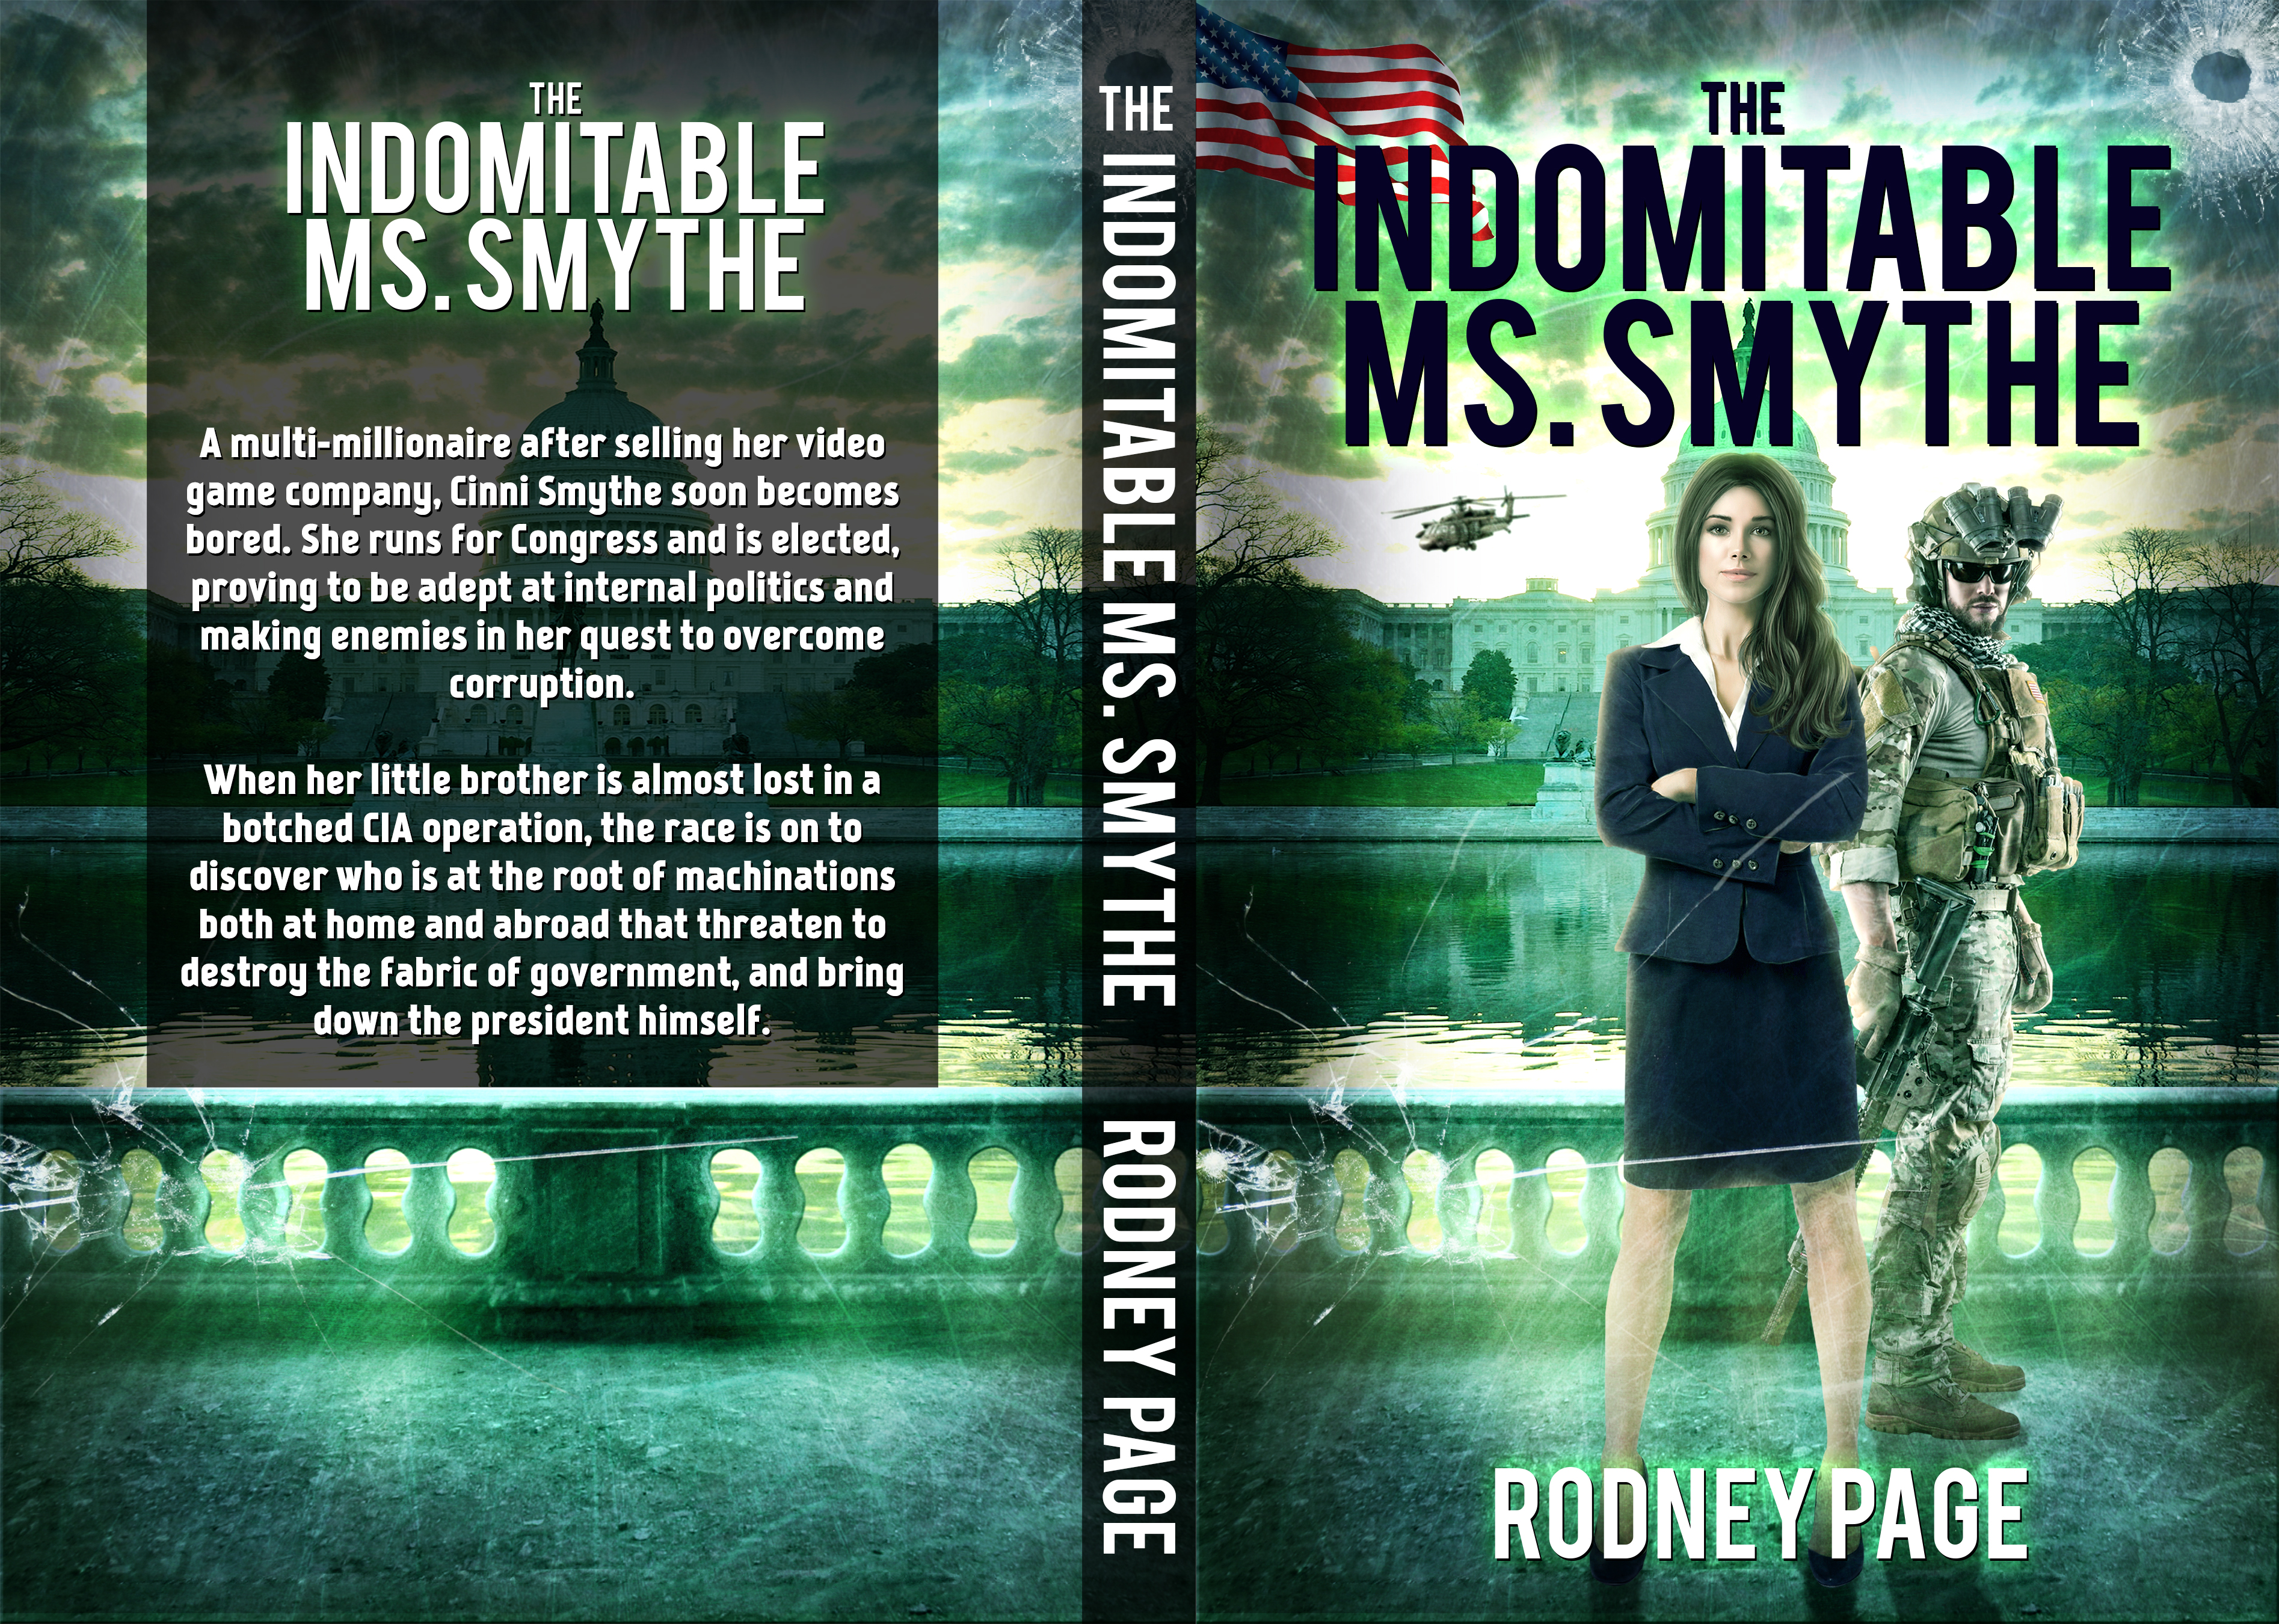 The Indomitable Ms Smythe